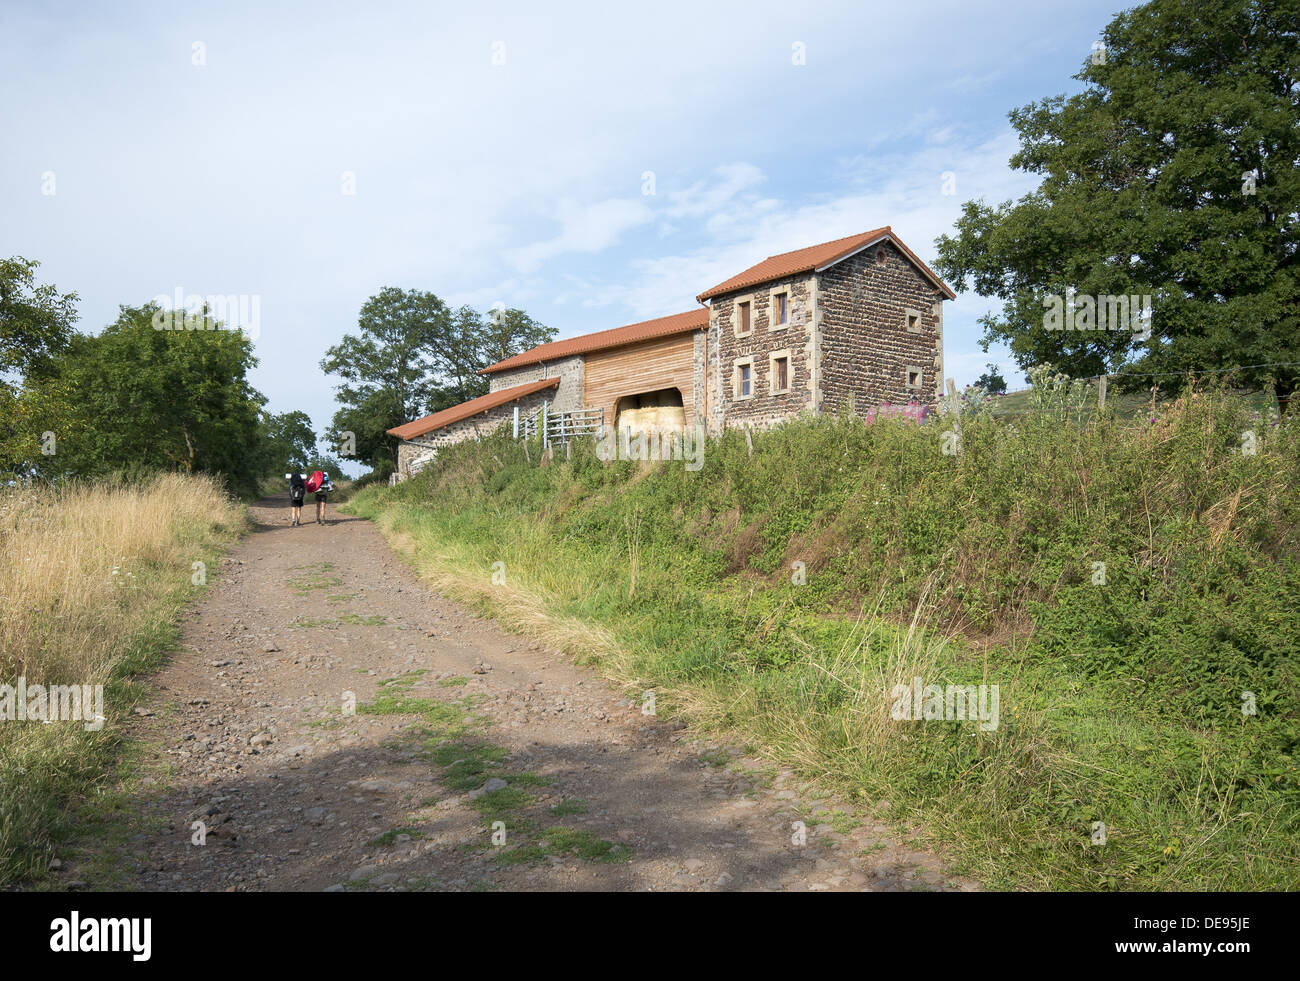 Pilgrims walking past farmhouse on the GR65 walking route the Way of St James in France - Stock Image